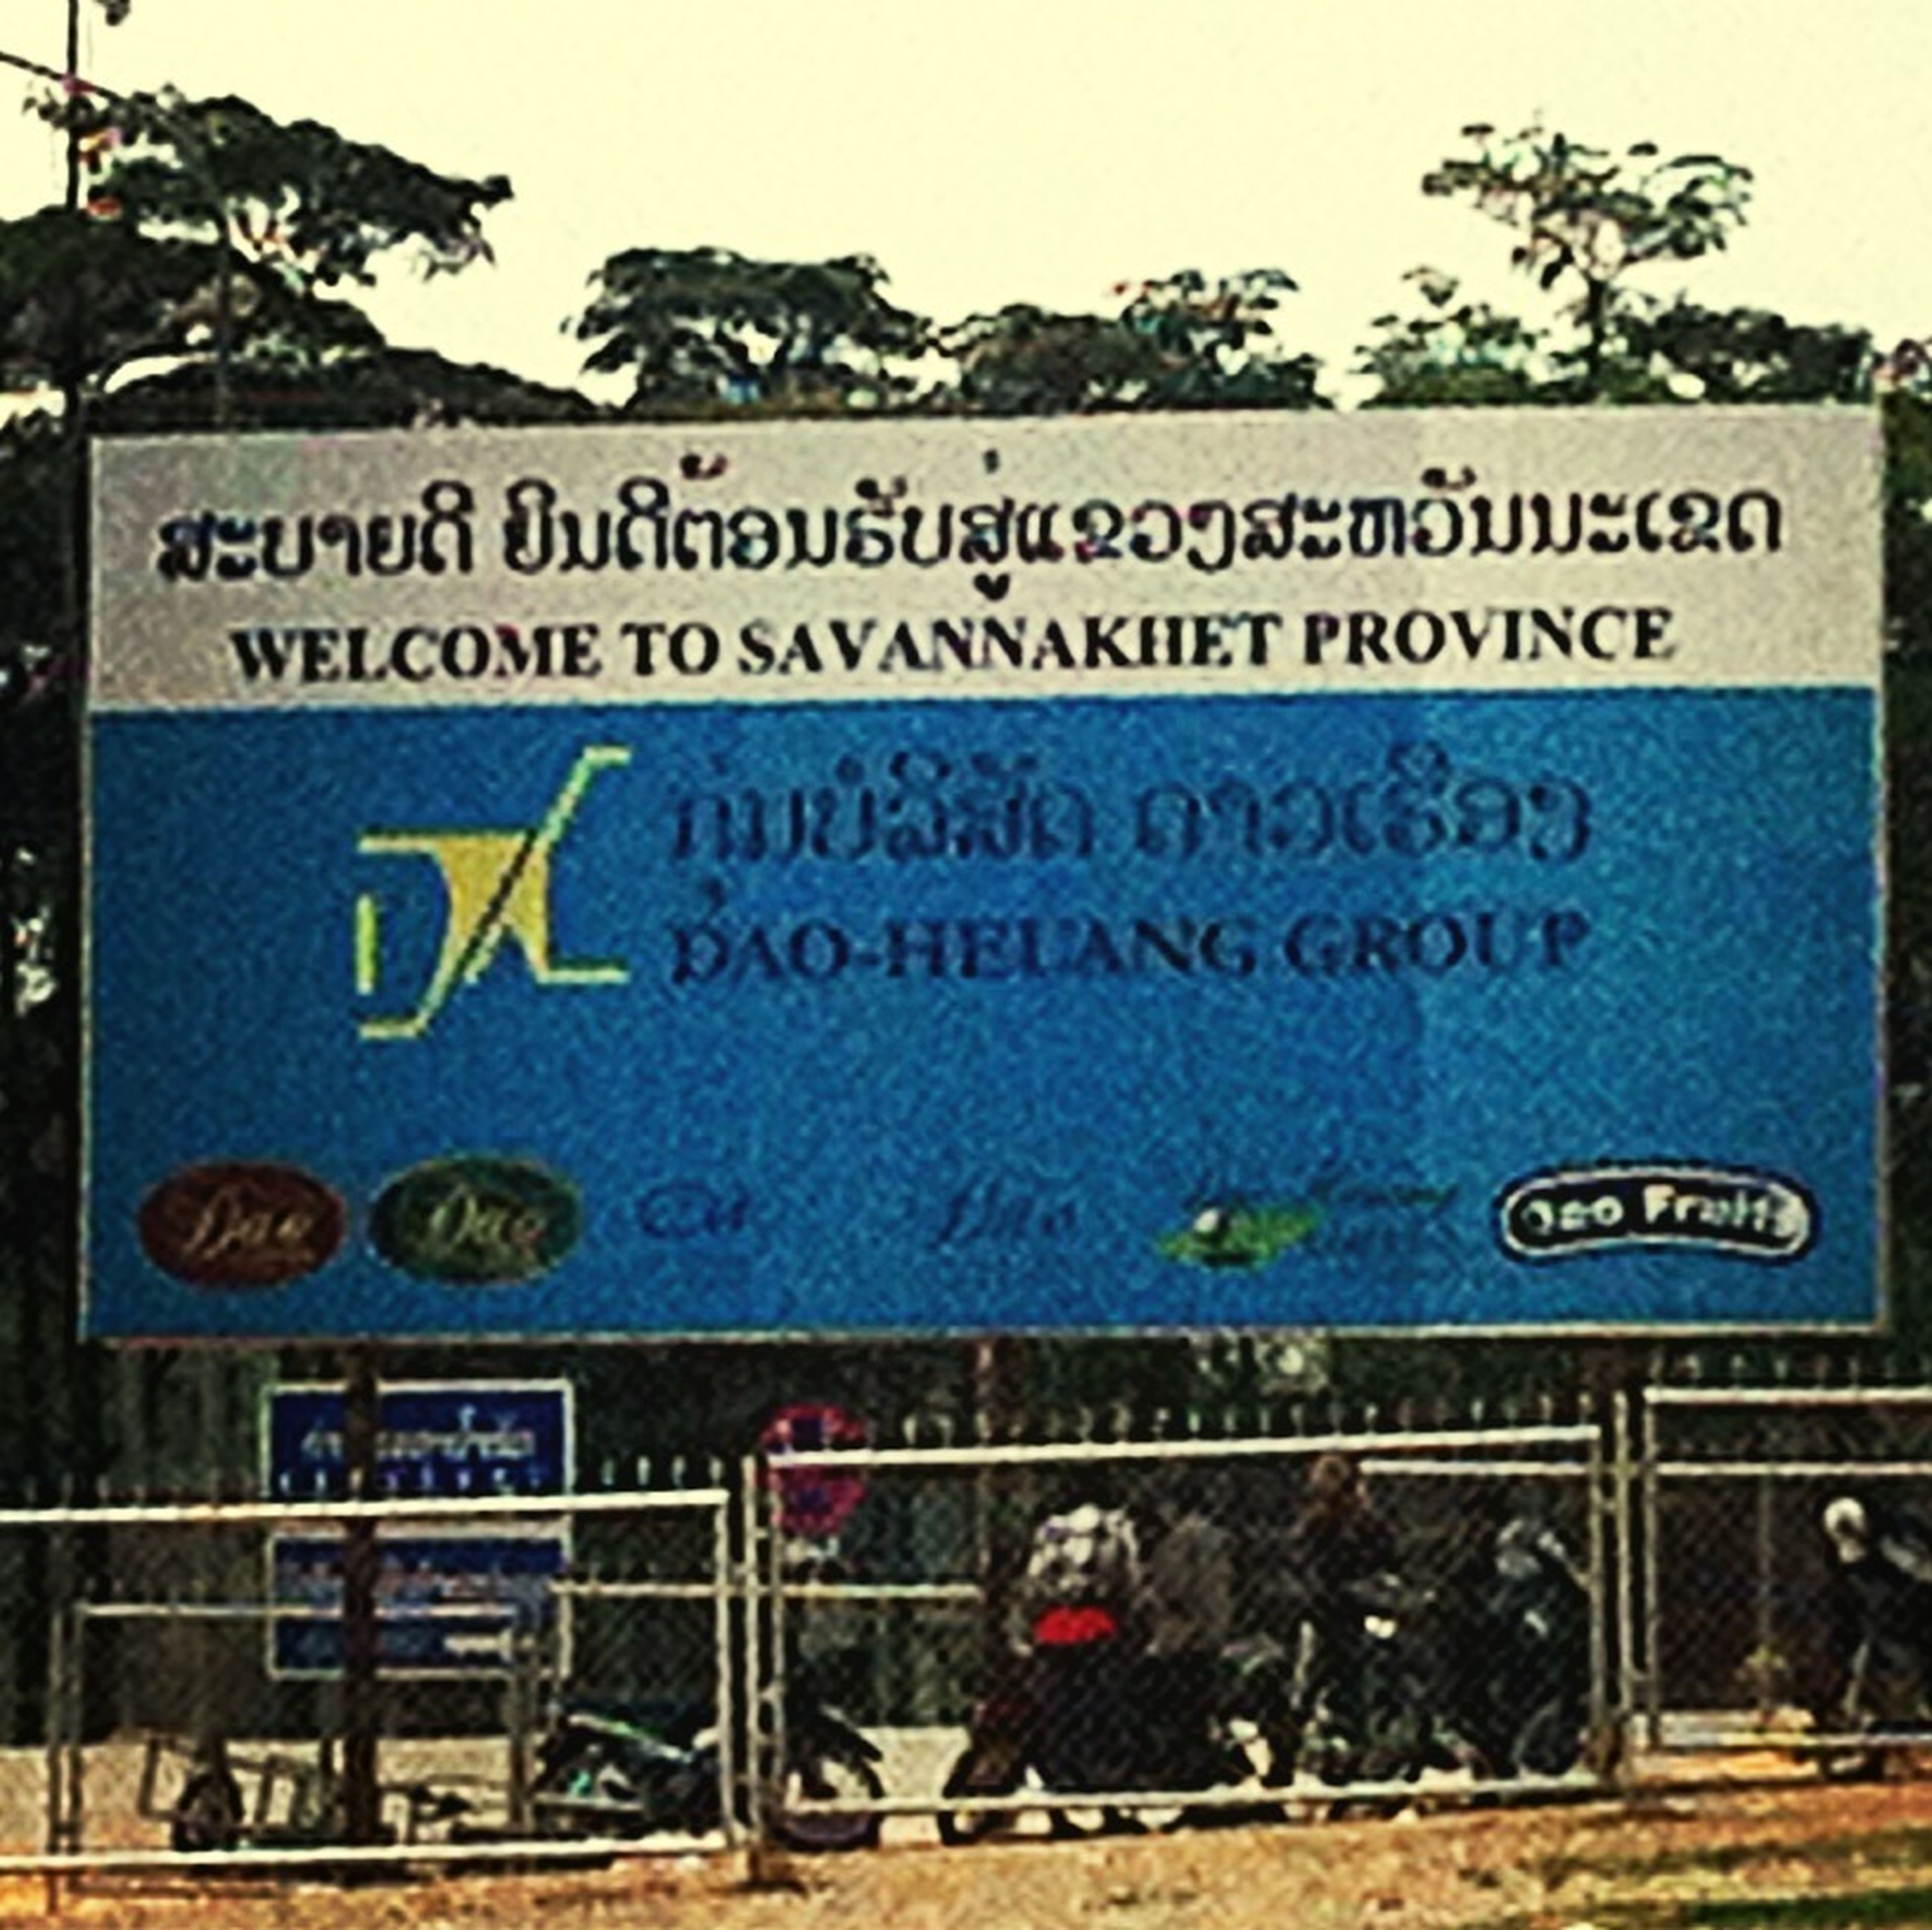 text, western script, communication, information sign, non-western script, information, sign, capital letter, guidance, warning sign, transportation, day, built structure, signboard, outdoors, road sign, architecture, building exterior, directional sign, sign board